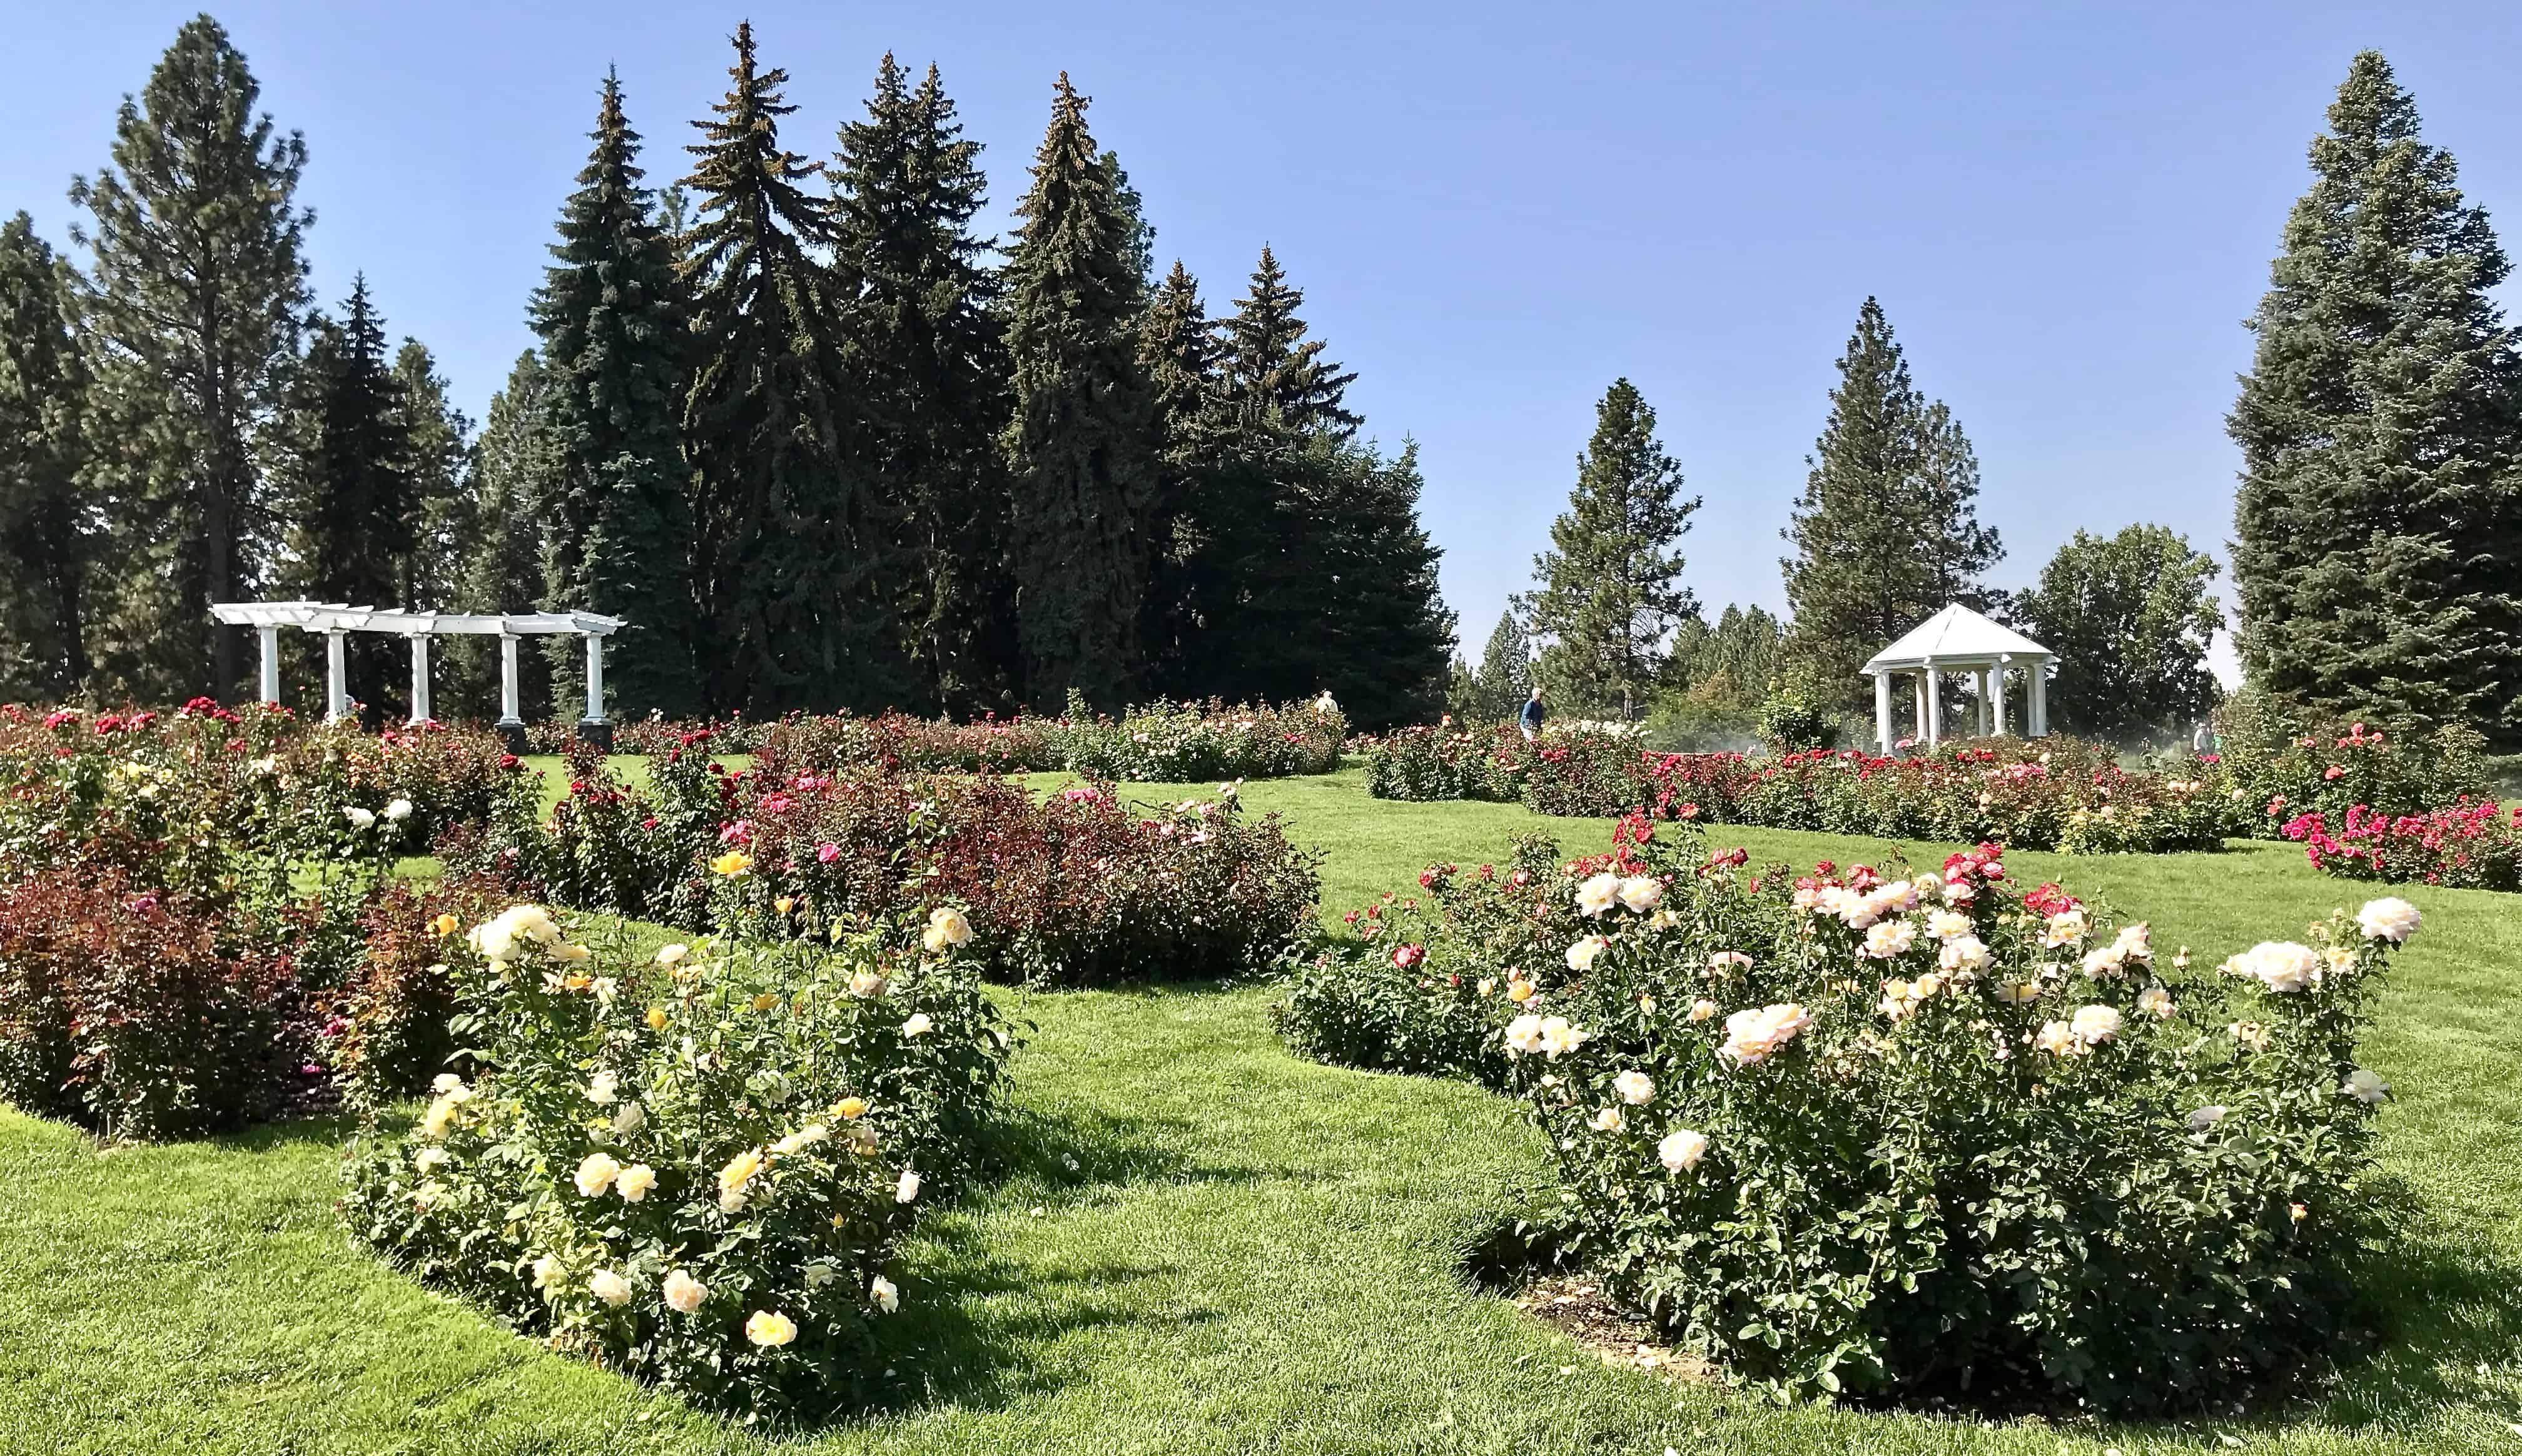 Manito Park A Beautiful Way To Spend An Afternoon Everyday Spokane